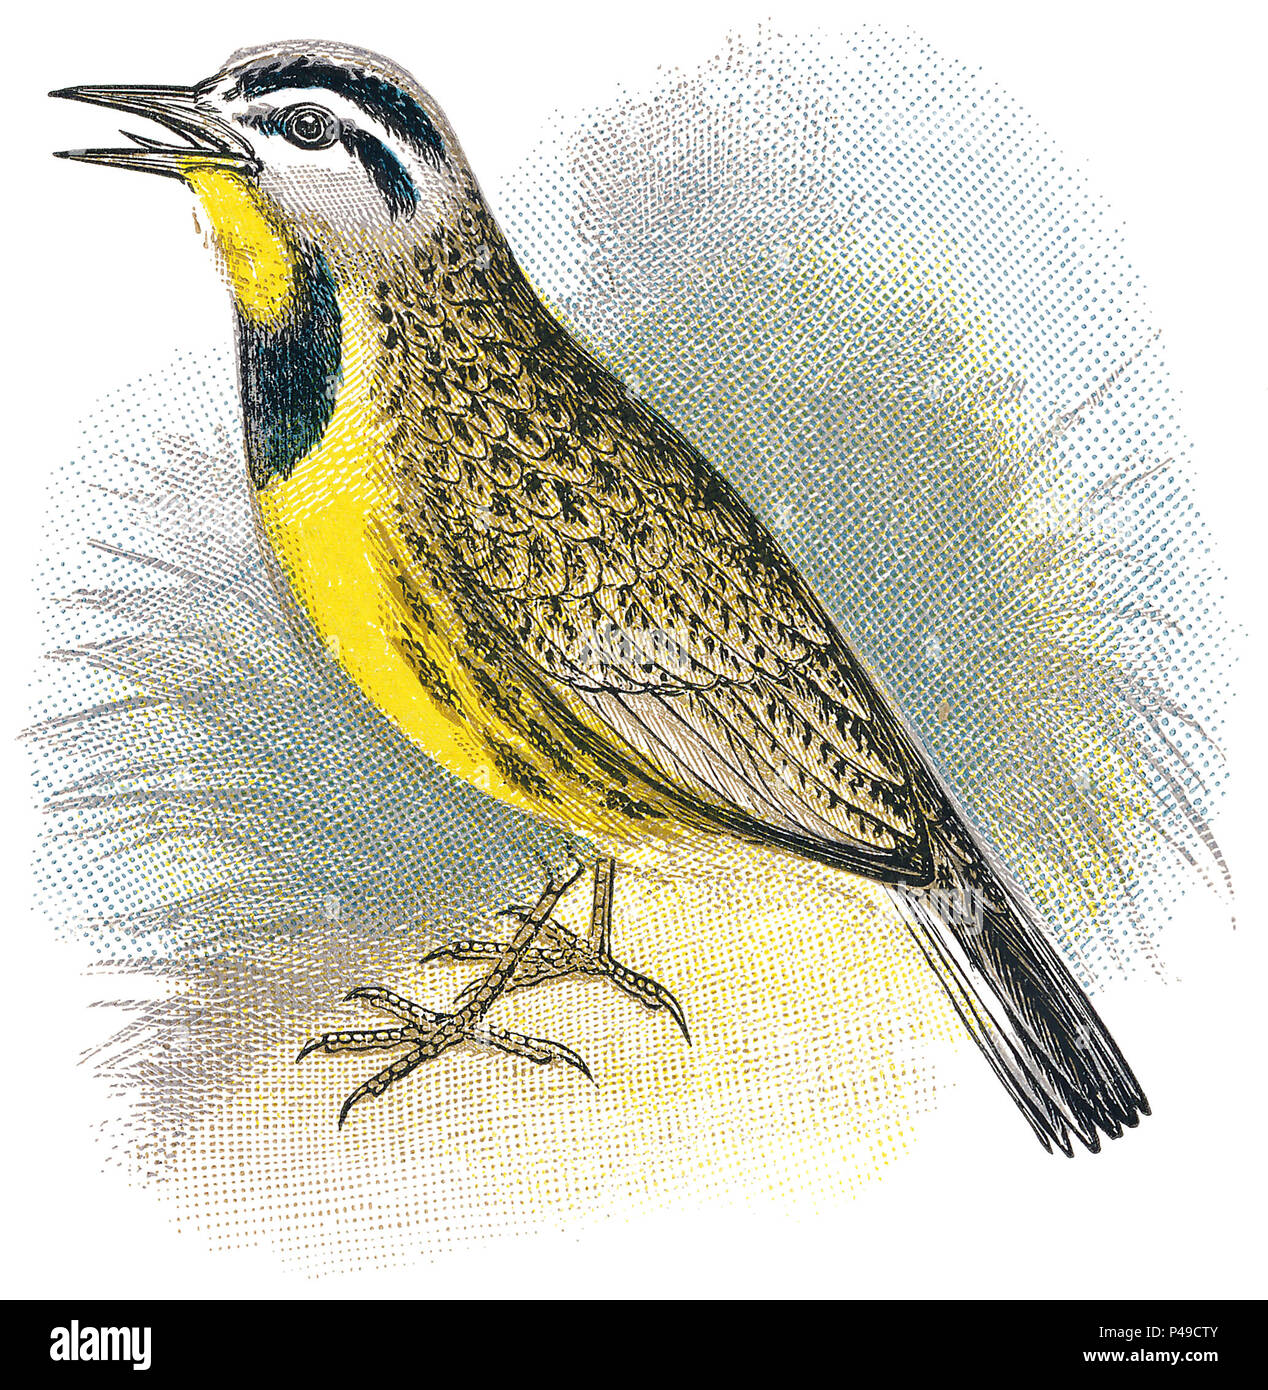 1898 colour engraving of an Eastern Meadowlark (sturnella magna). - Stock Image